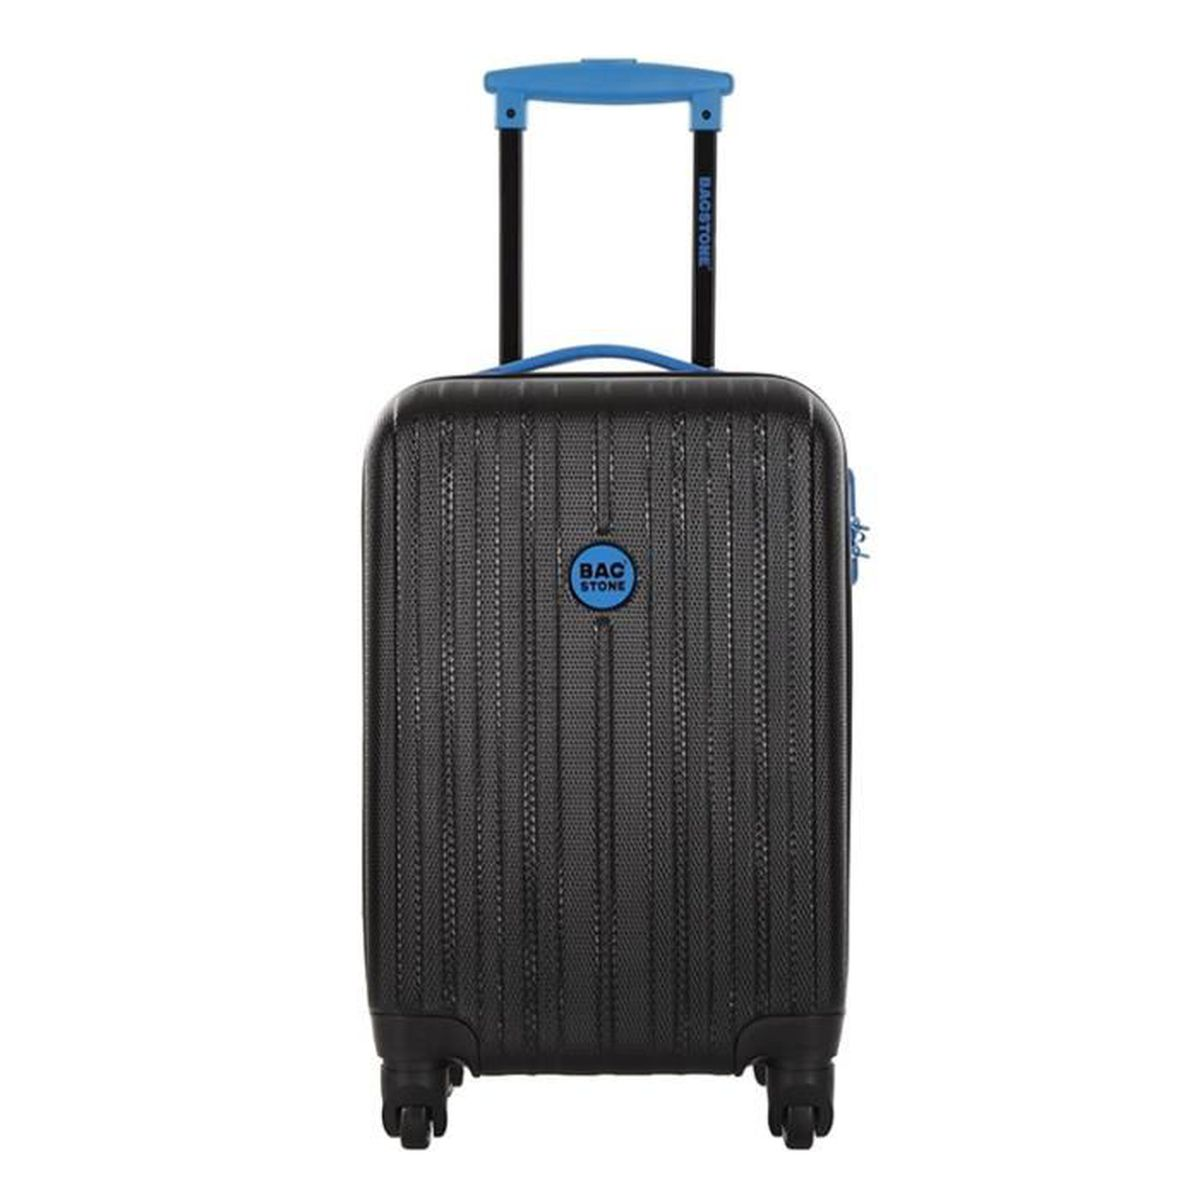 bag stone valise cabine low cost milady taille achat vente valise bagage 3607070769416. Black Bedroom Furniture Sets. Home Design Ideas